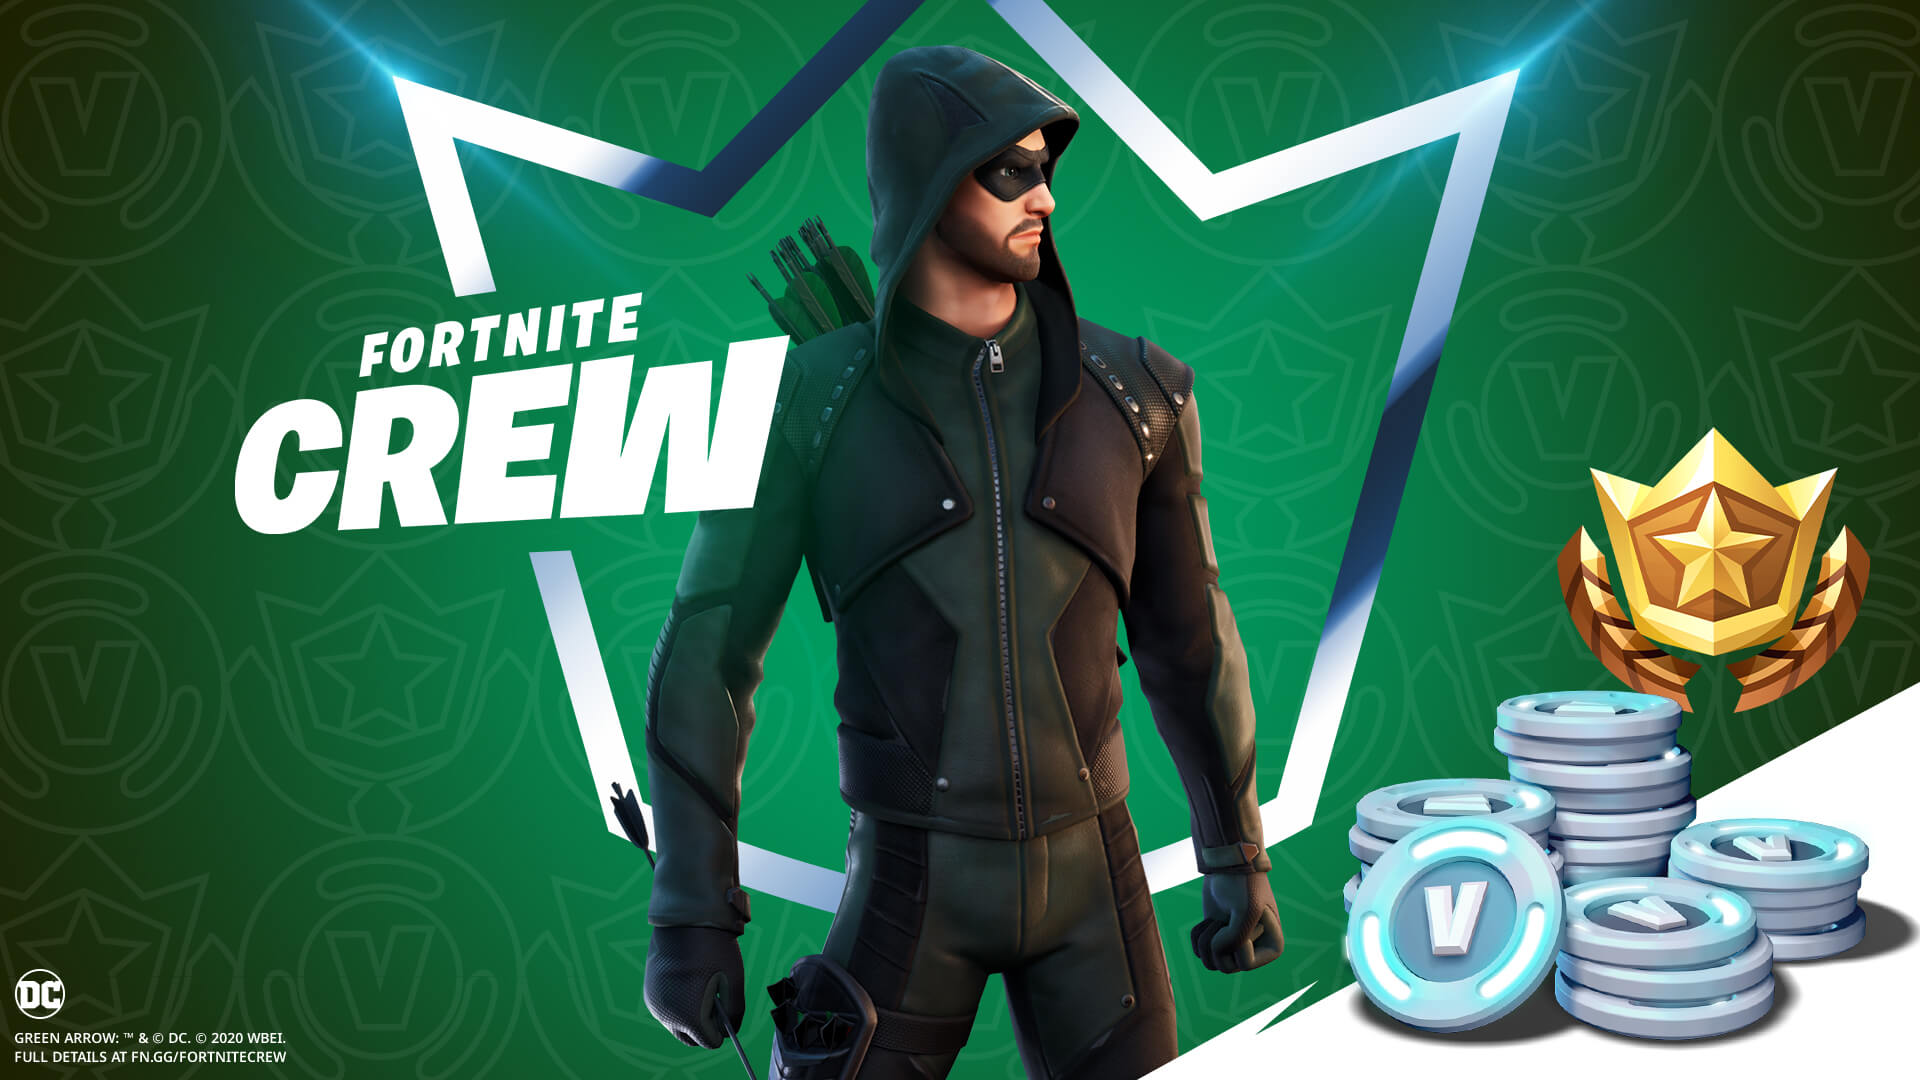 Fortnite News / View latest fortnite news, leaks, tips, videos, guides and other updates on fortnitemaster.com.